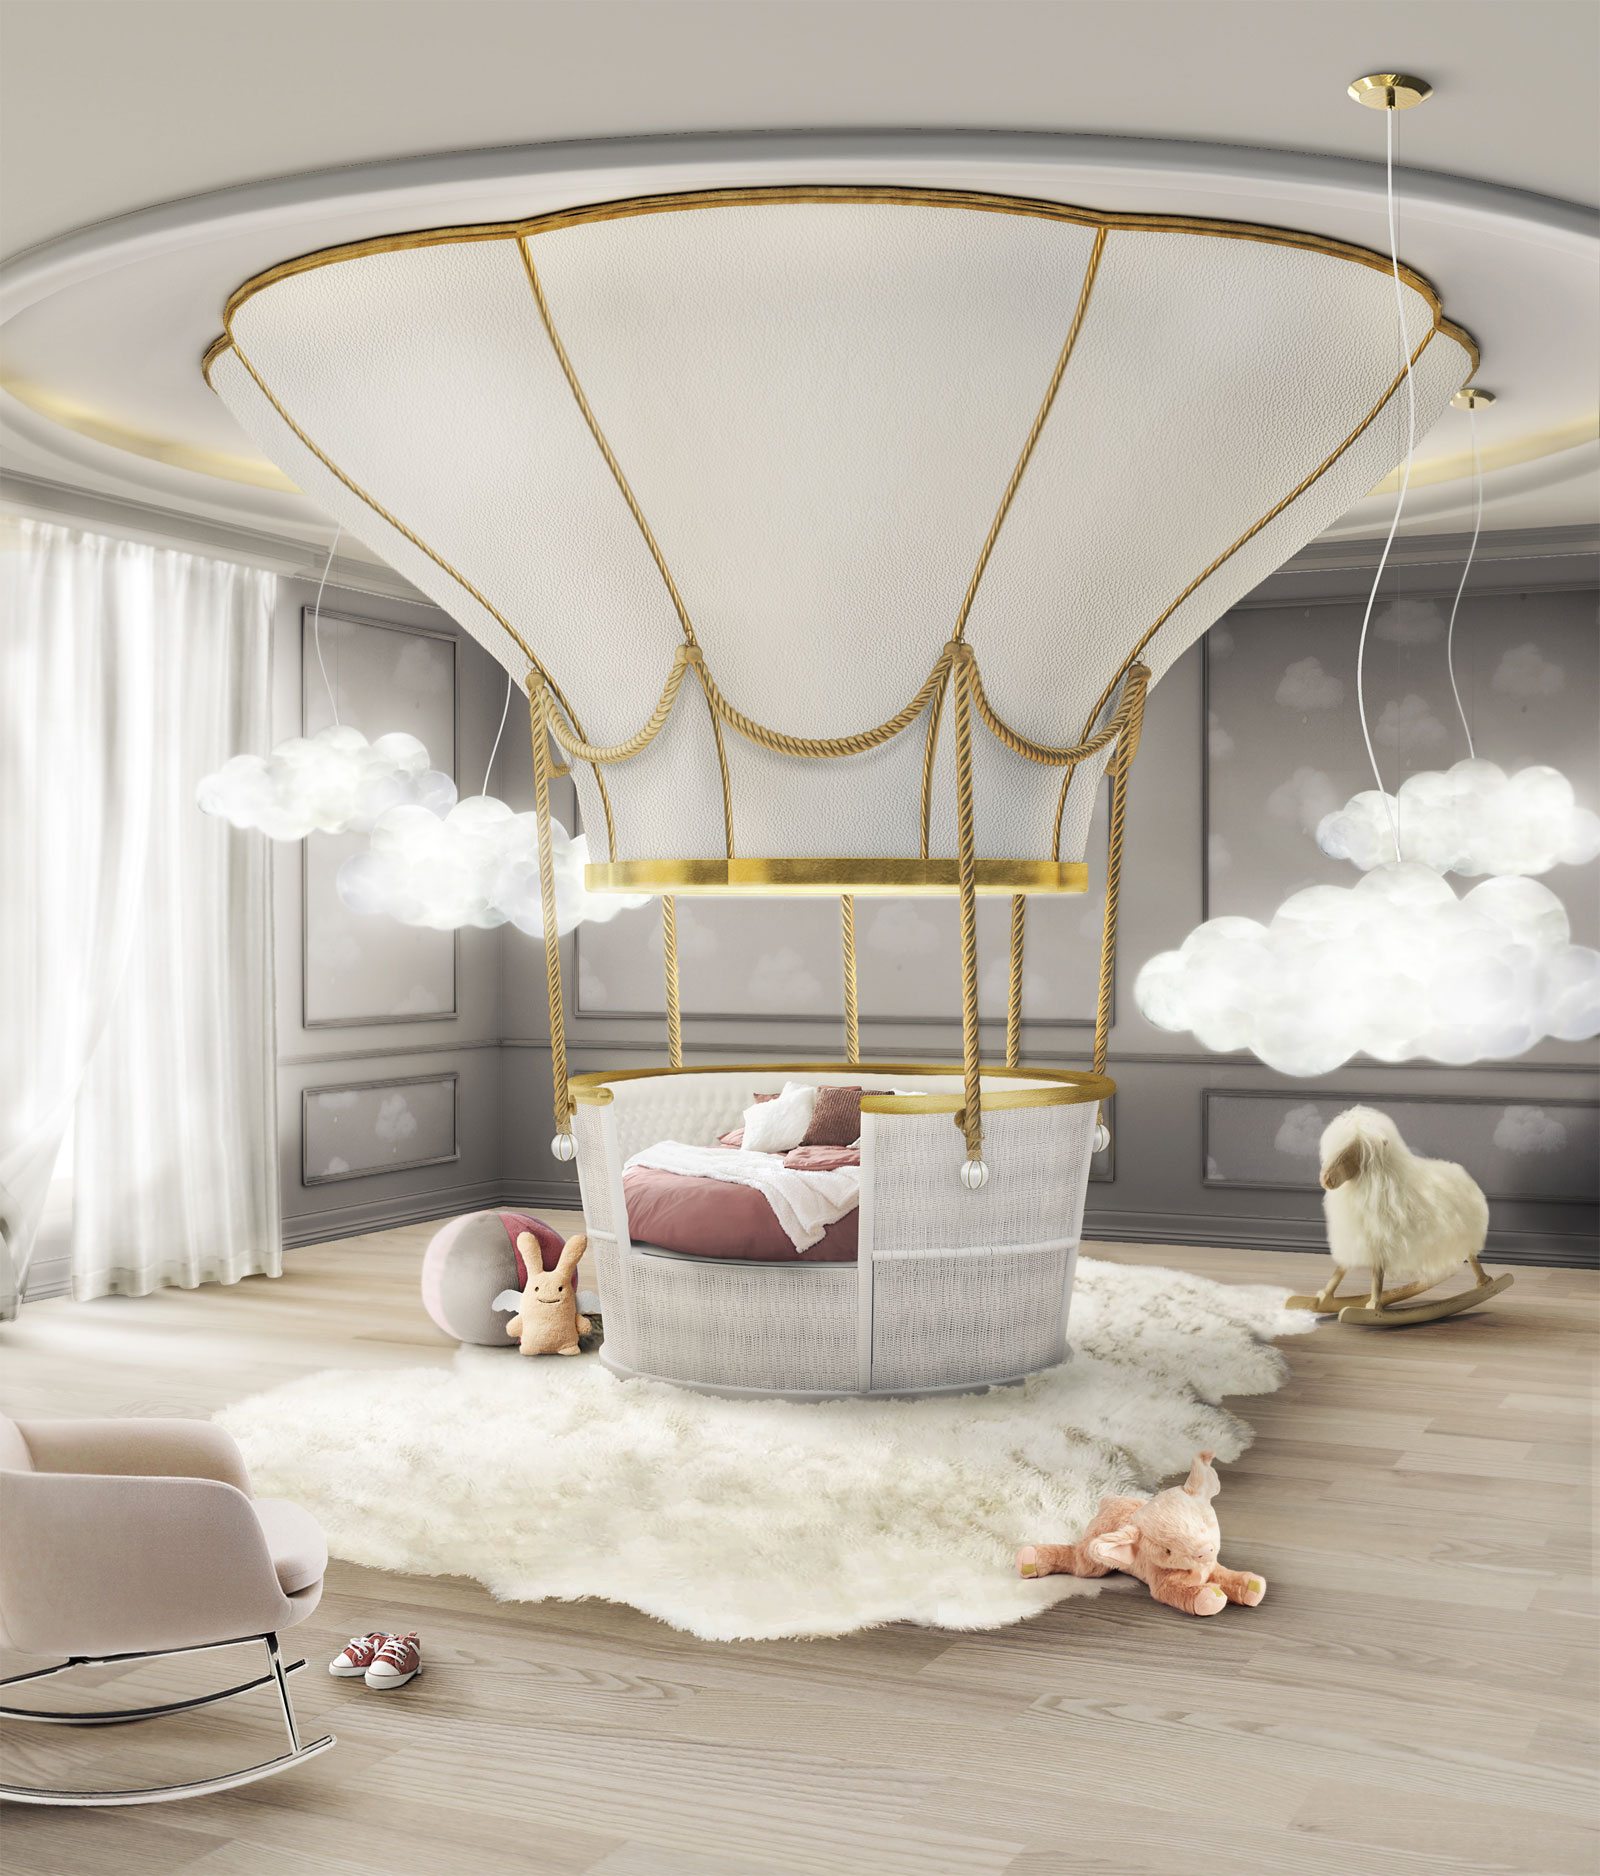 Three amazing beds for children that will make adults jealous for The best bed designs